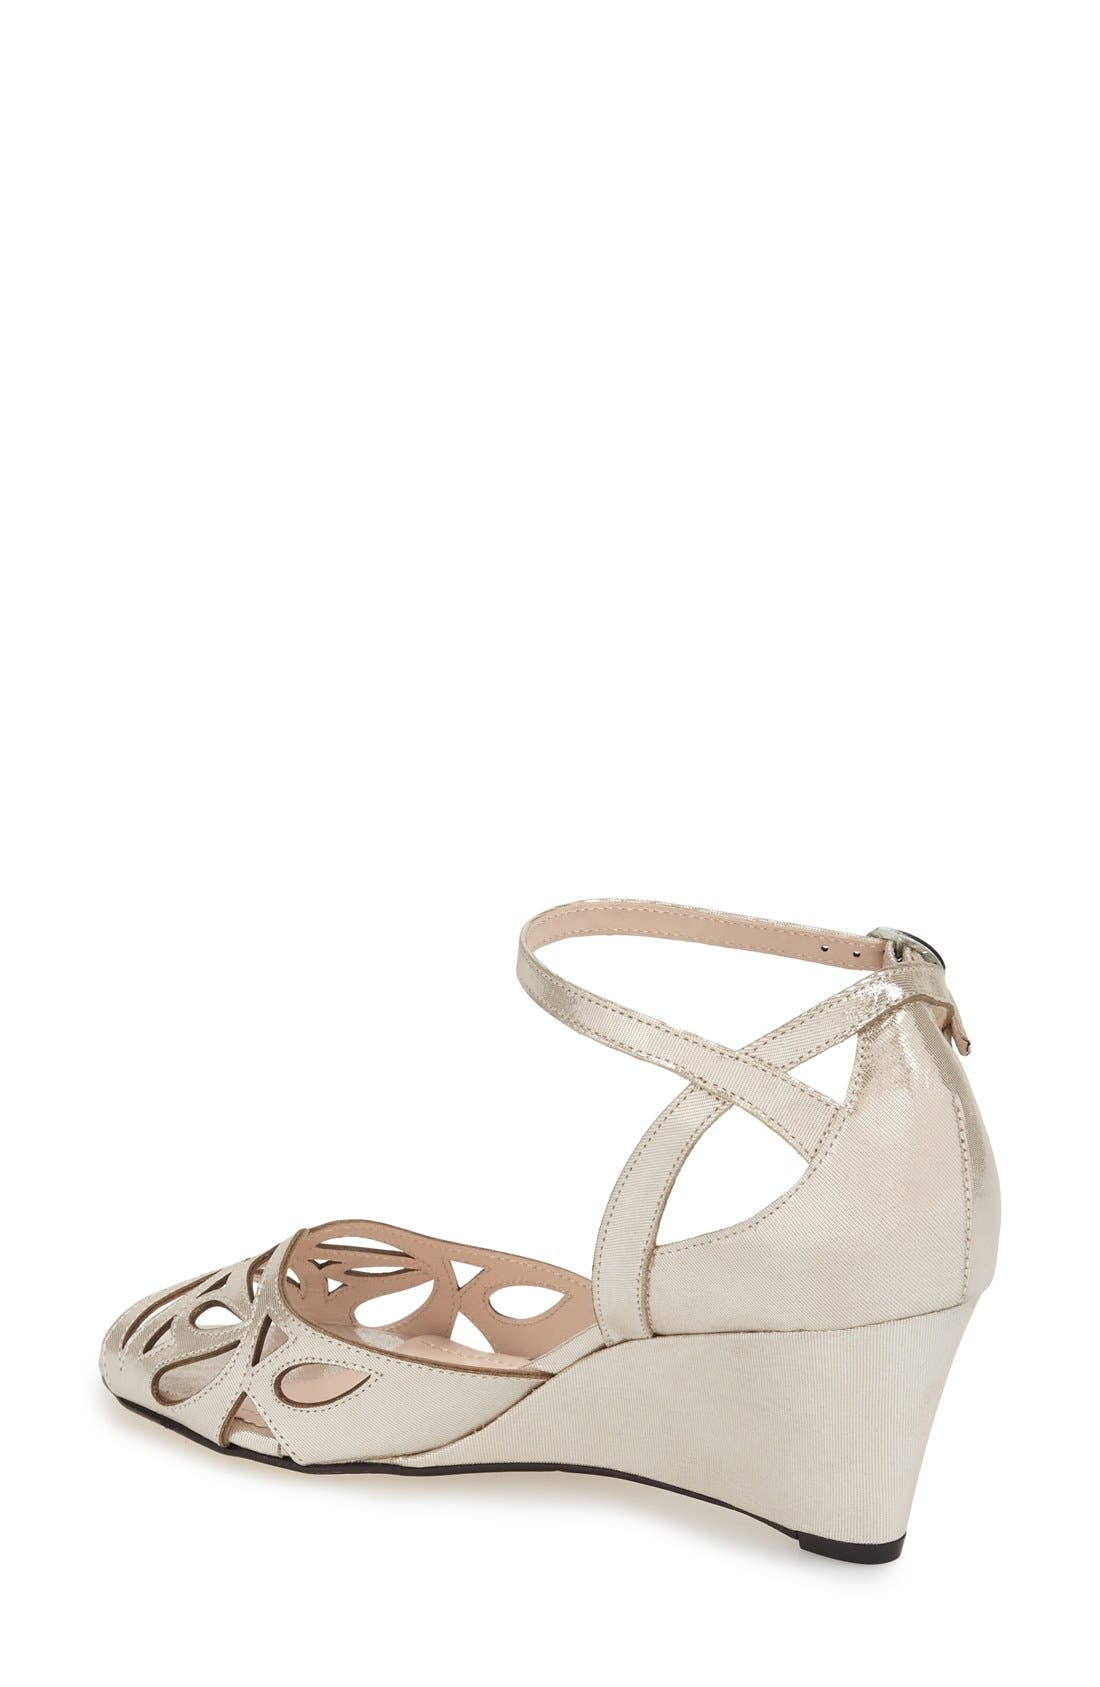 KLUB NICO,                             'Kismet' Wedge Sandal,                             Alternate thumbnail 2, color,                             SILVER LEATHER